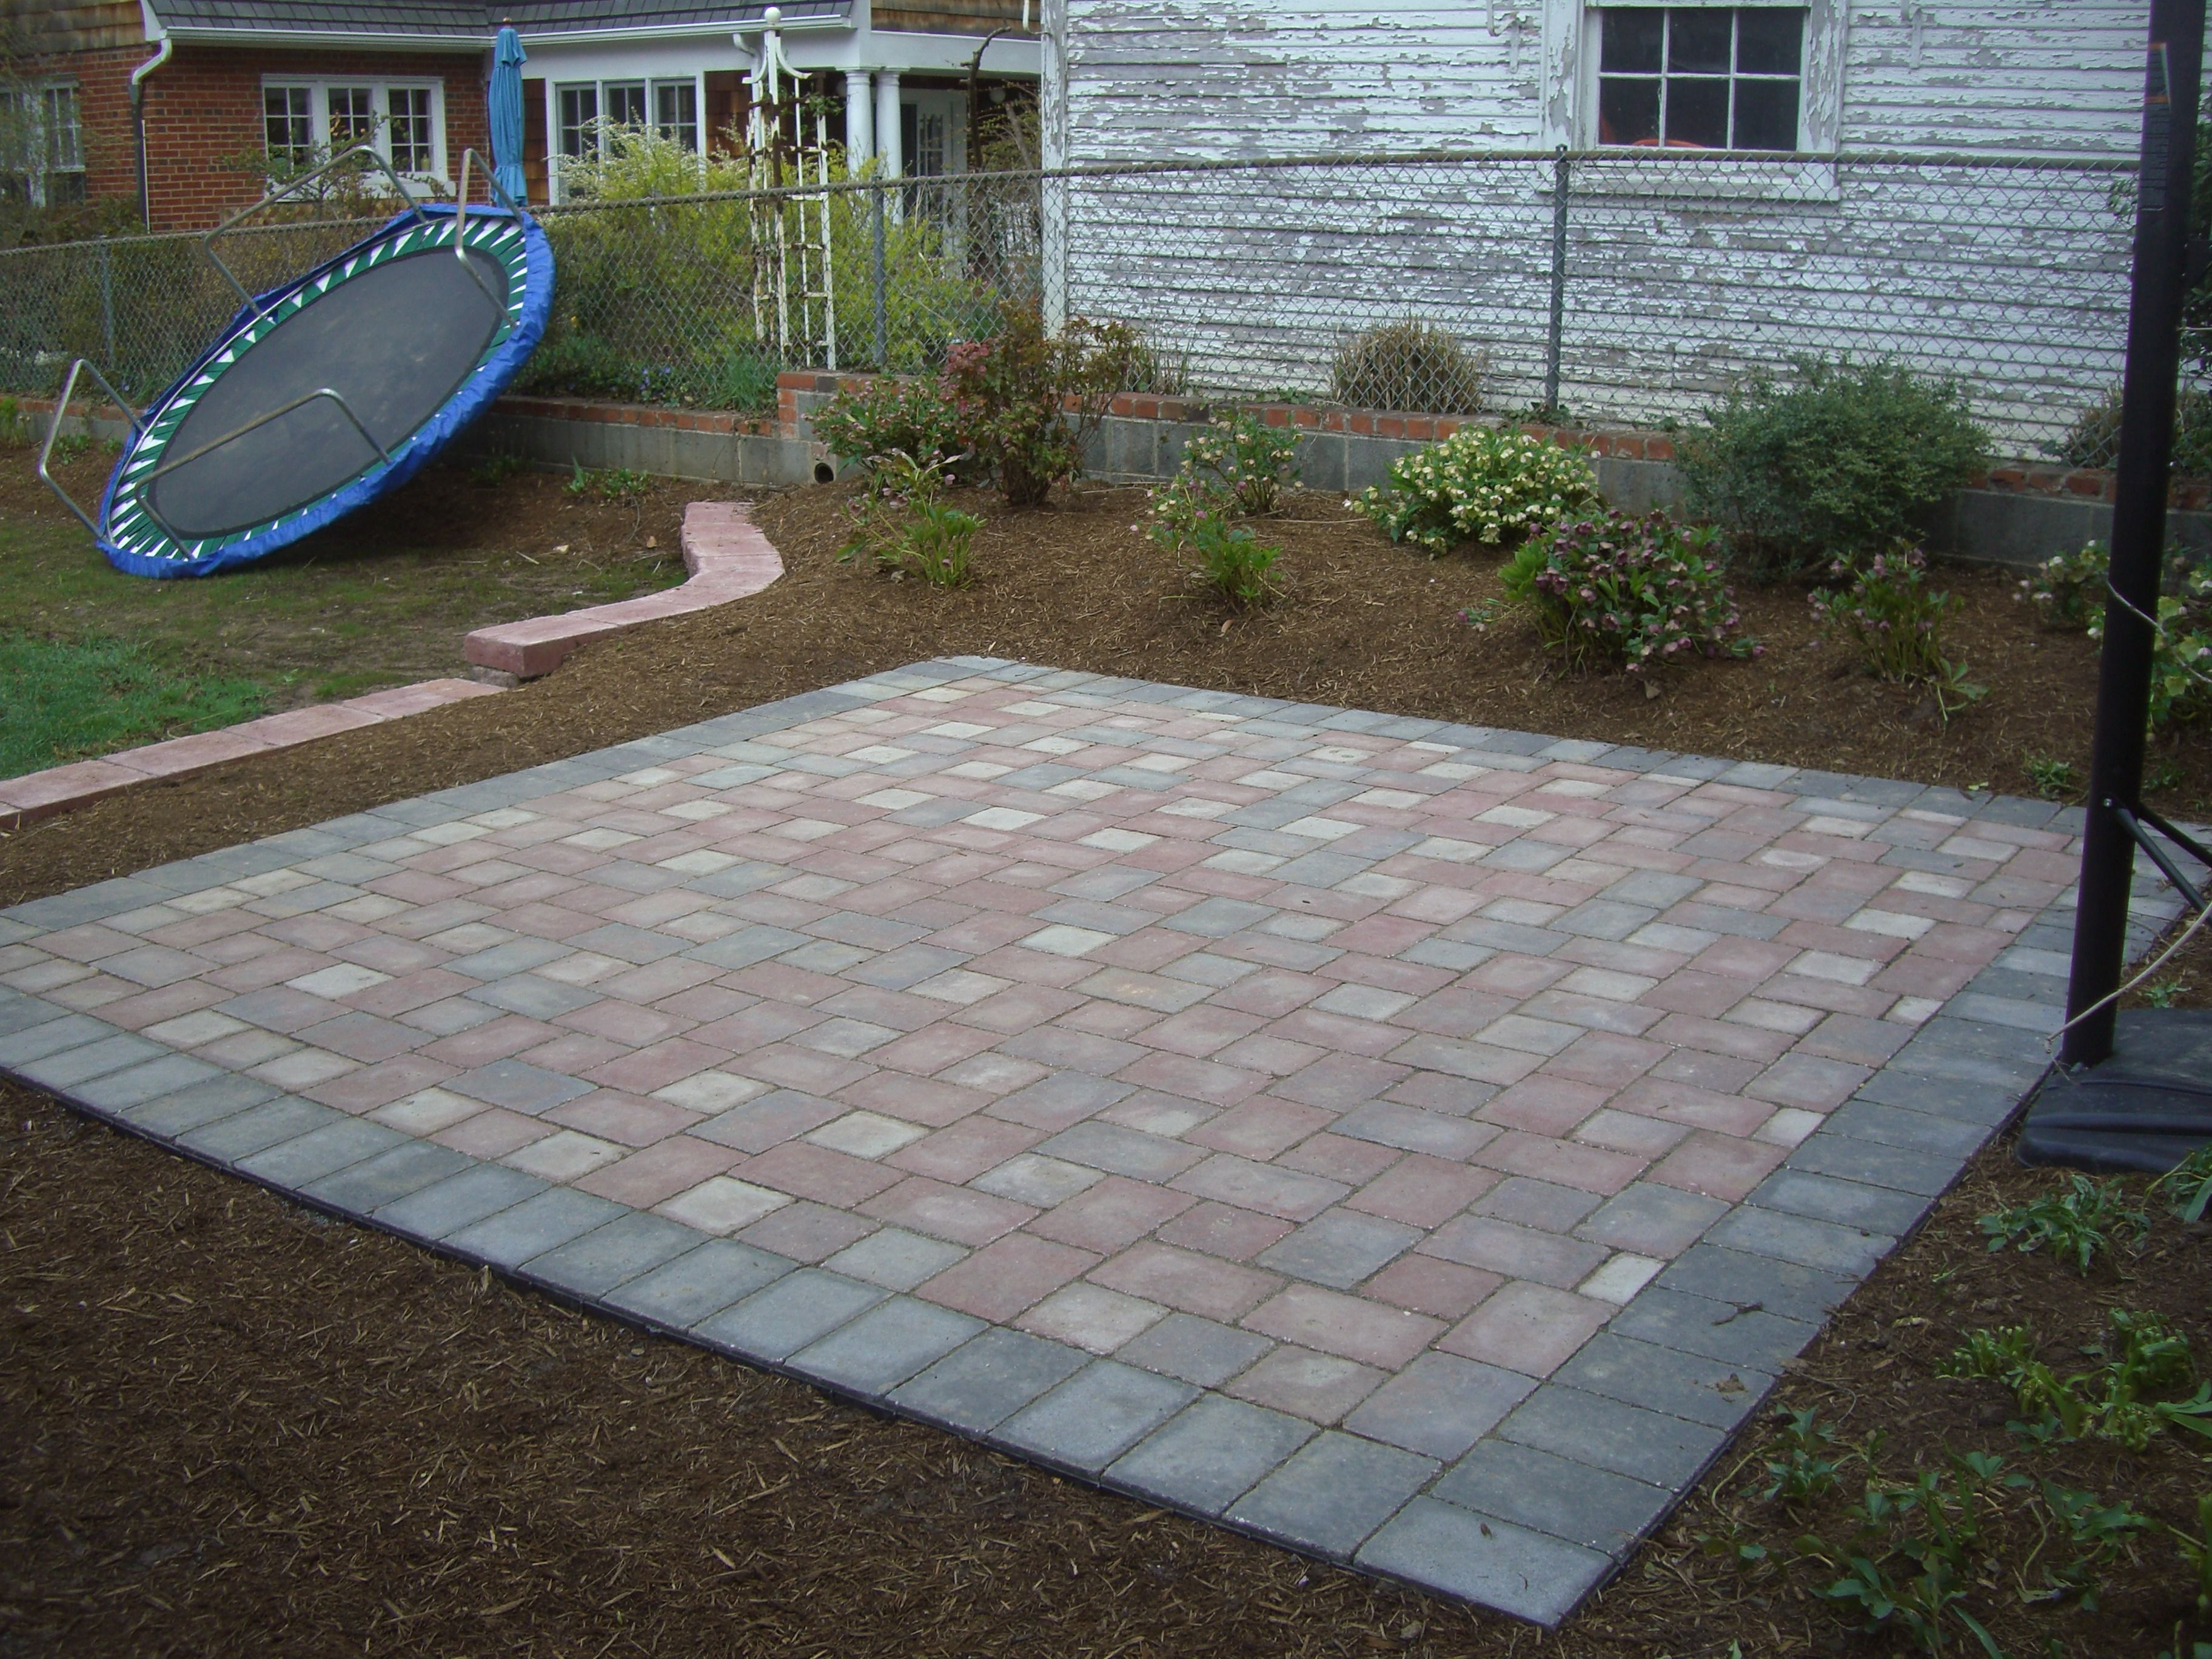 this  patio garden is conveniently located in your yard allowing room for a basketball hoop as